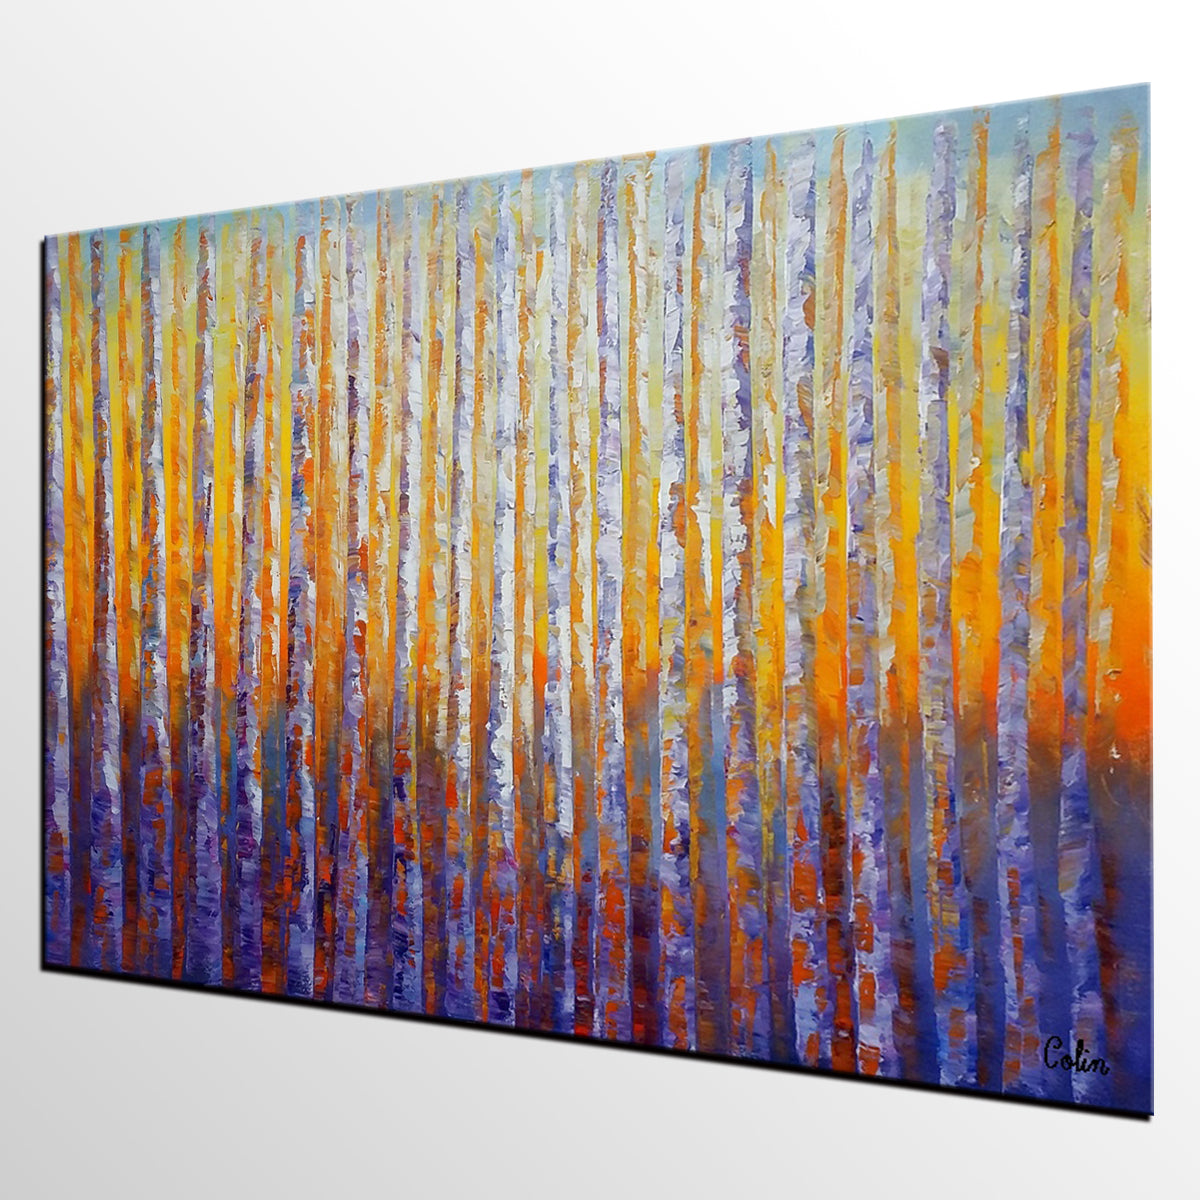 Birch Tree Painting, Oil Painting, Abstract Painting, Landscape Art, Modern Art, Canvas Art